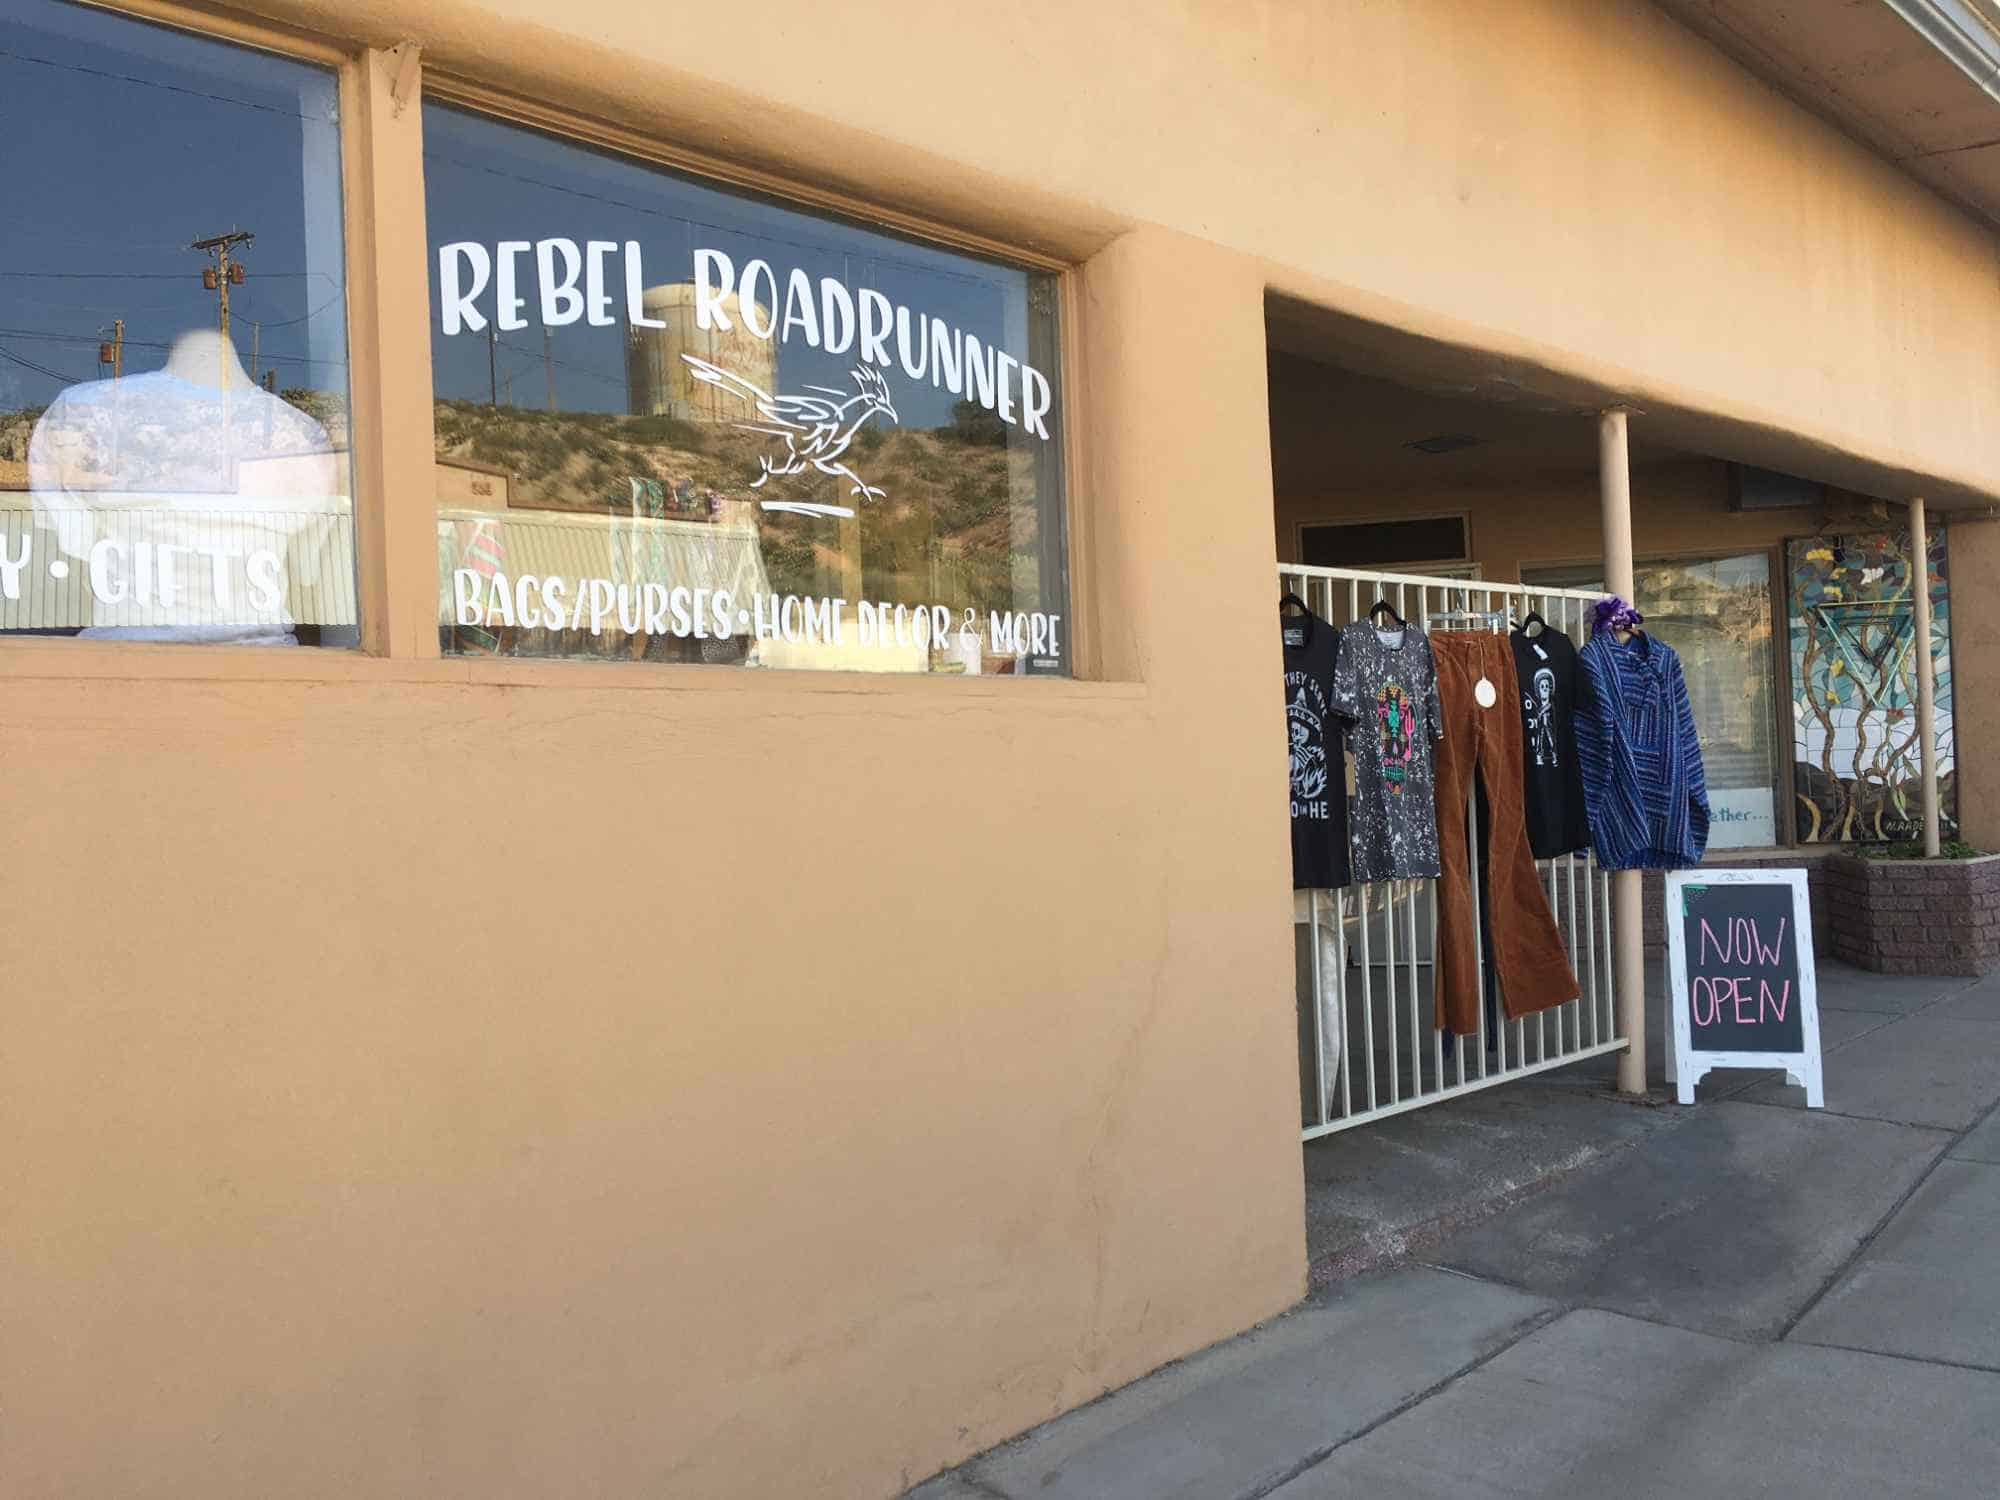 Rebel Roadrunner, clothing store in Truth or Consequences NM